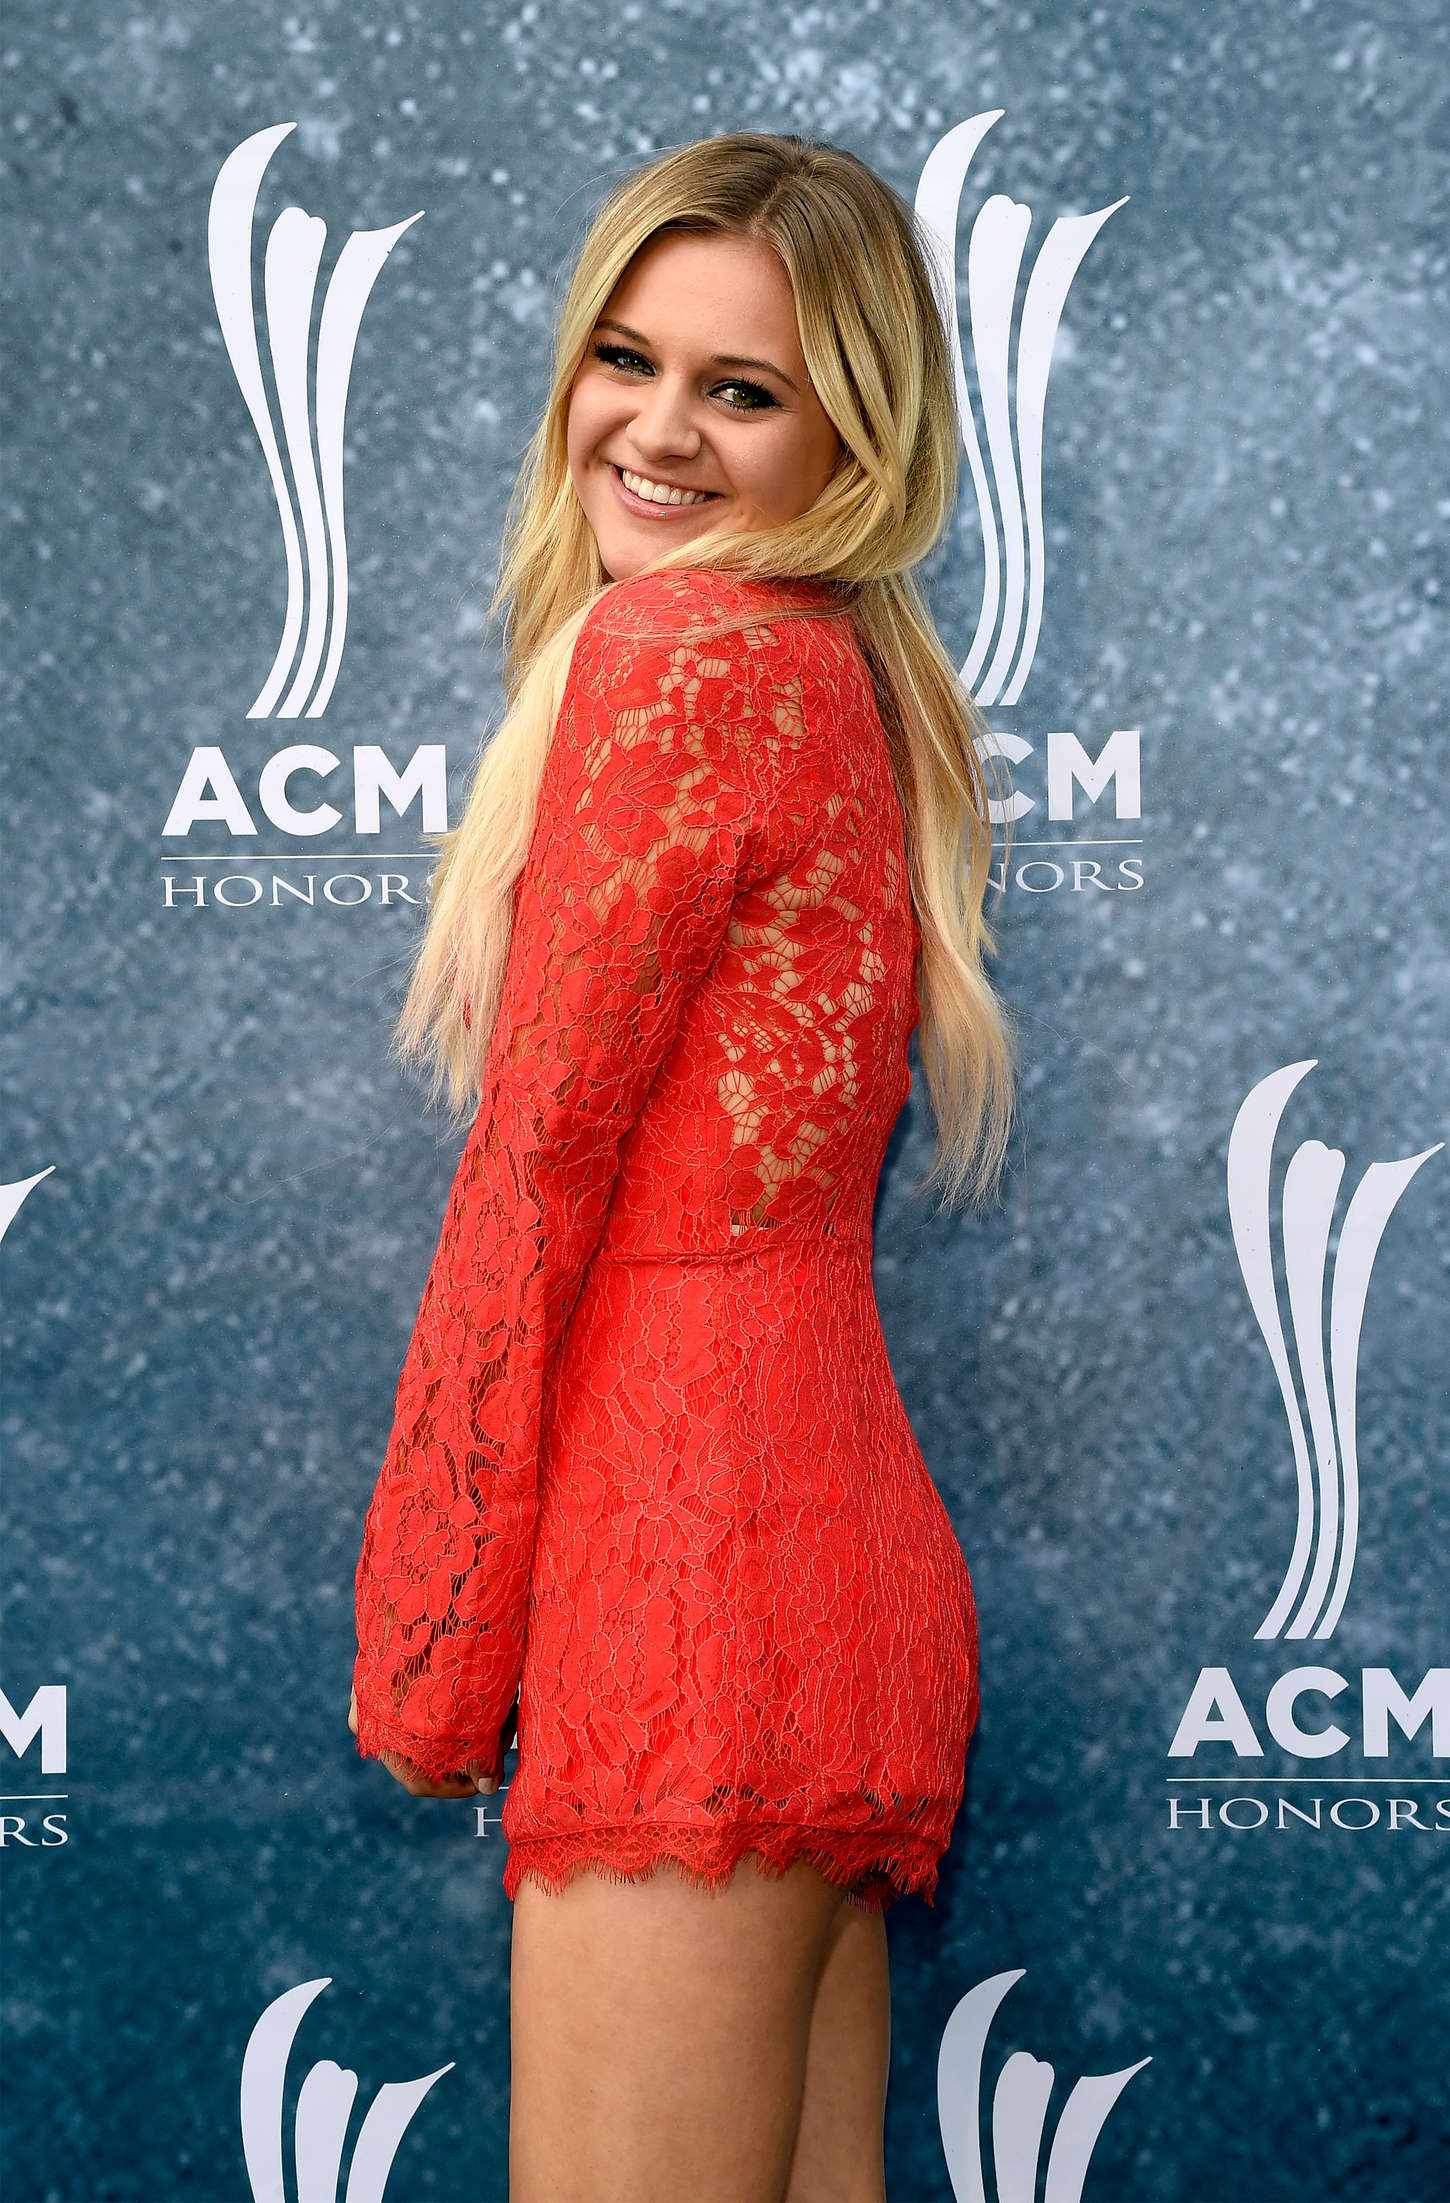 Kelsea Ballerini 2015 : Kelsea Ballerini: The 9th Annual ACM Honors -08